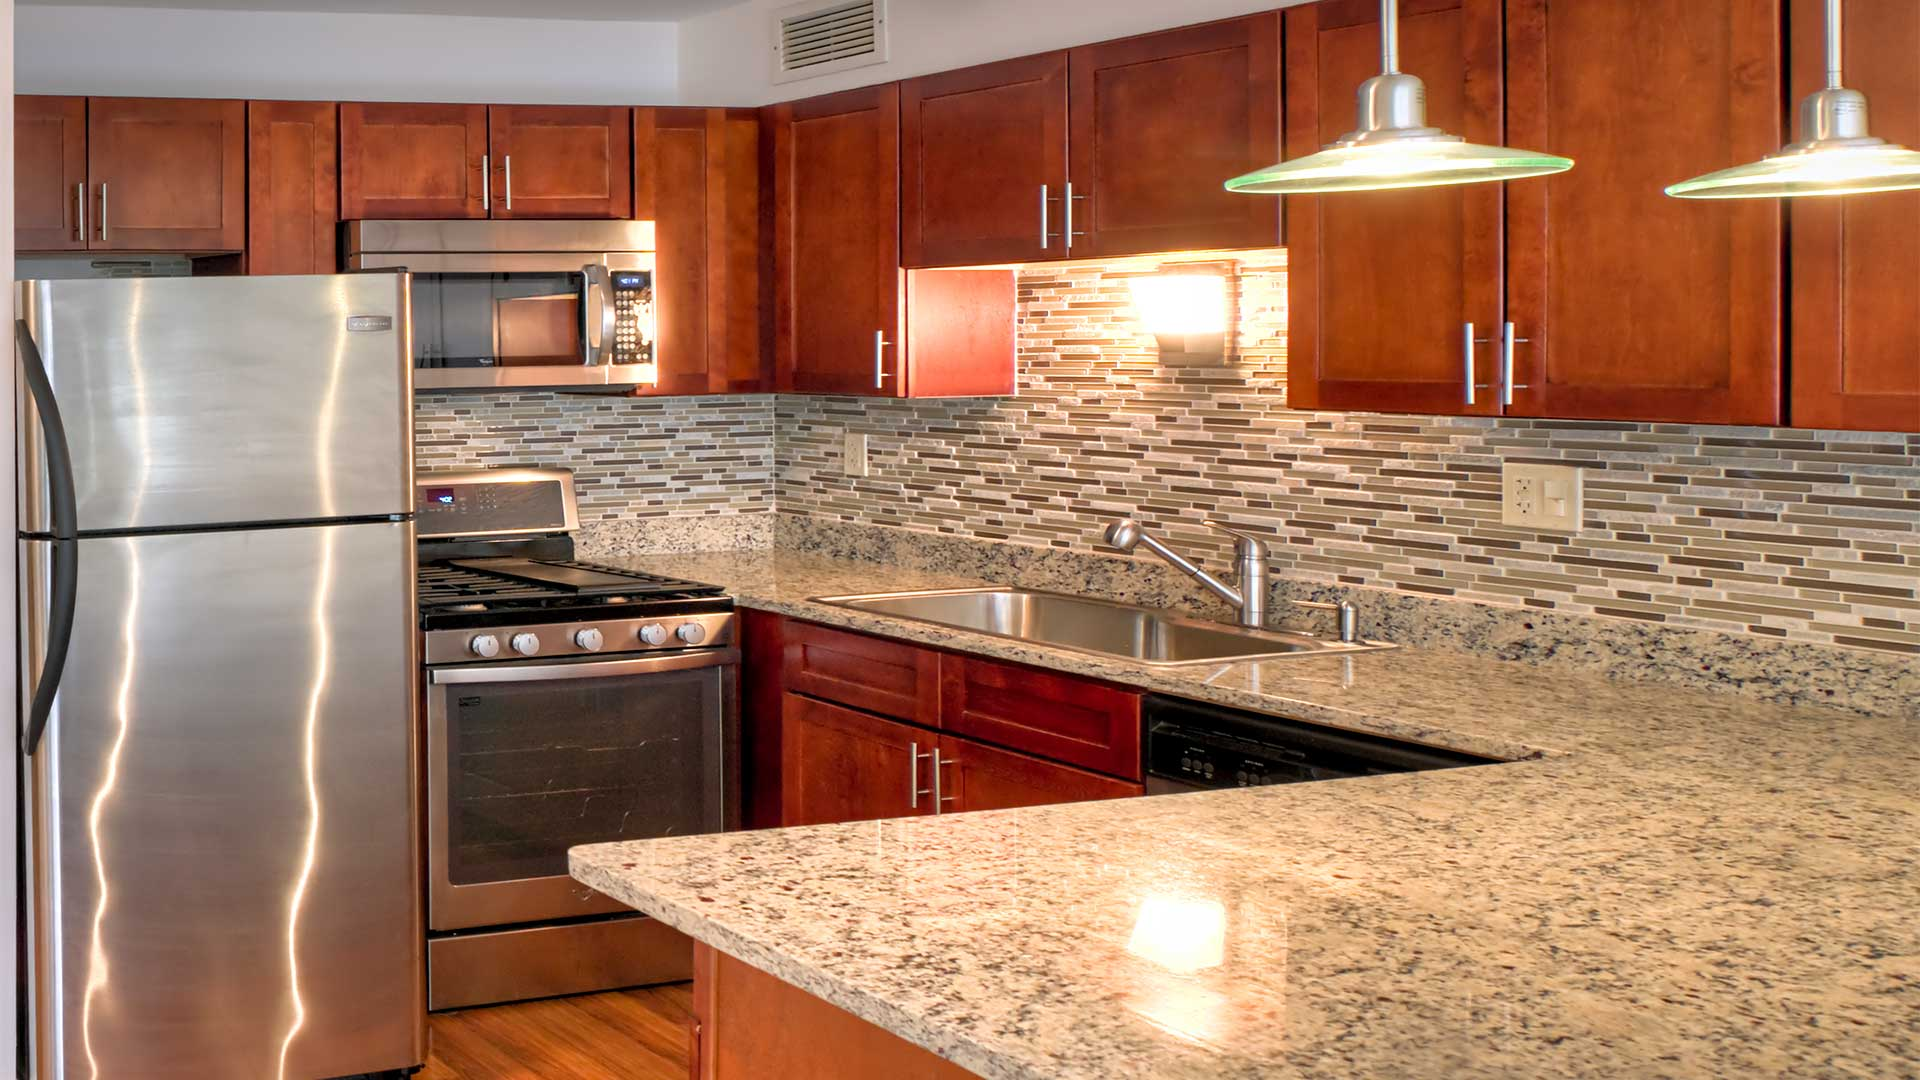 An updated kitchen in a 1350-1360 Lake Shore Drive residence. Stainless steel appliance line the back wall and the granite countertop wraps around to the right.